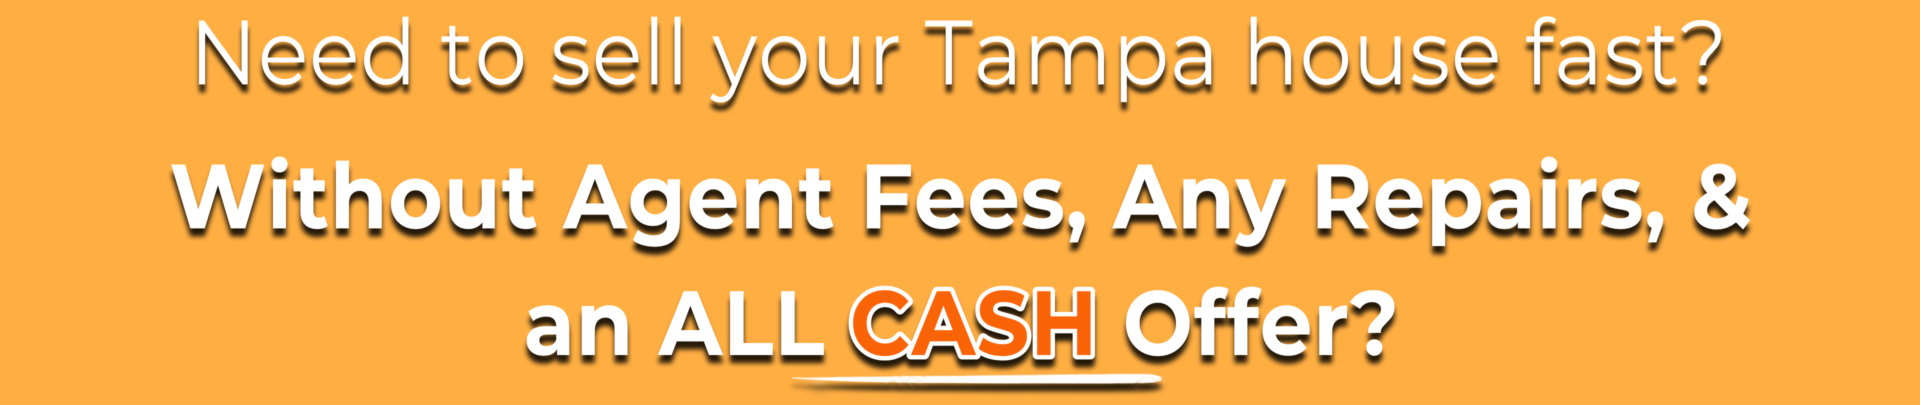 Sell My House Fast Tampa | We Buy Houses Tampa | Cash for Houses Tampa